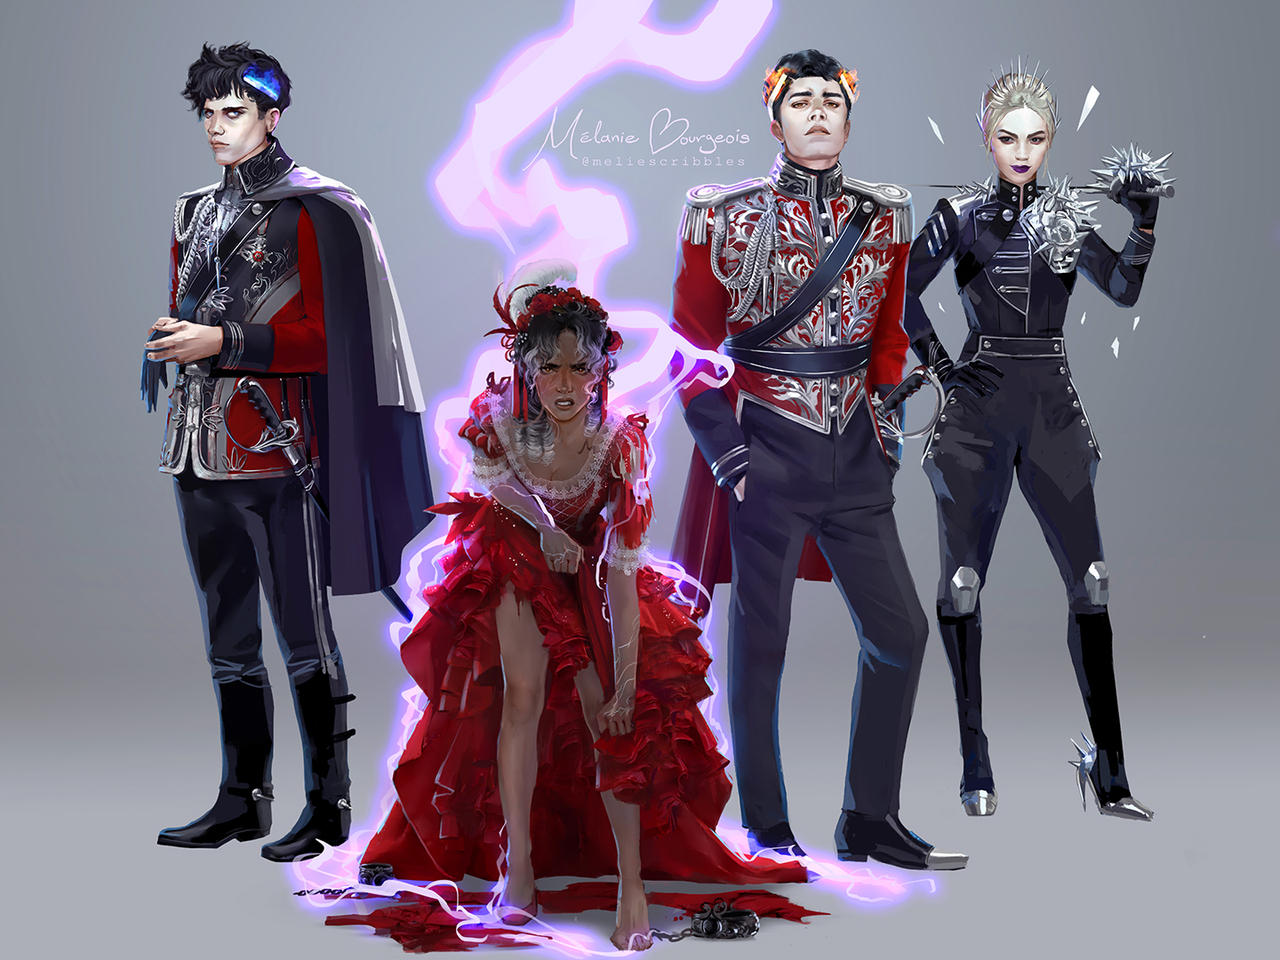 red queen character lineup by Freiheit on DeviantArt